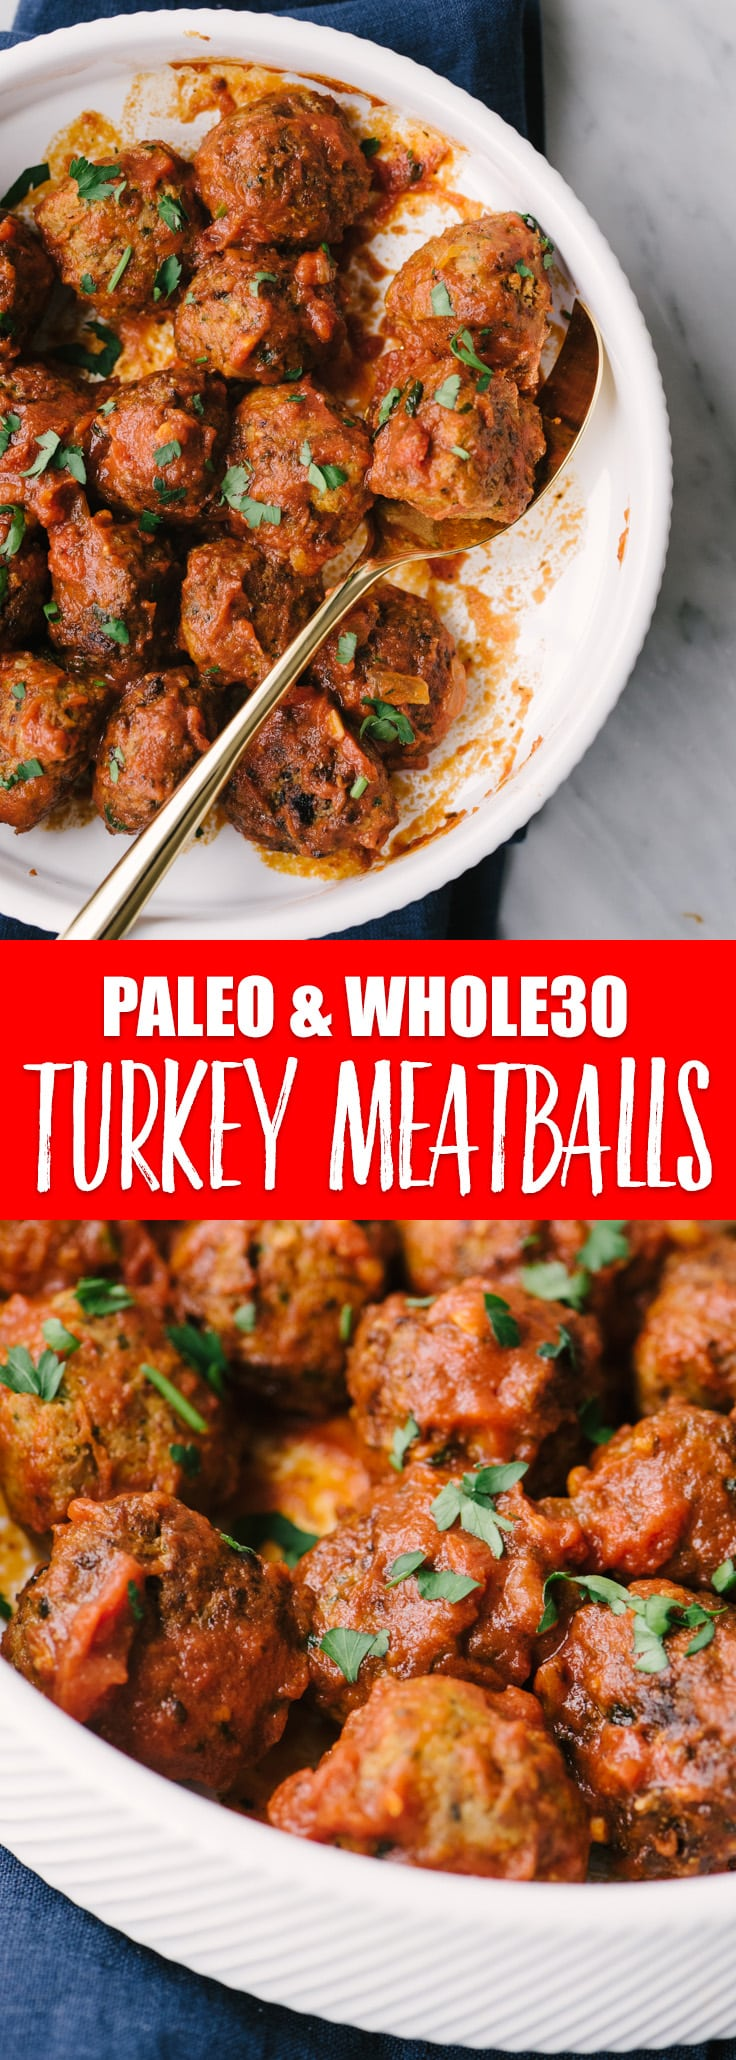 These whole 30 and paleo turkey meatballs are moist, tender, and incredibly flavorful. The whole family will love this easy, paleo and whole 30 ground turkey dinner recipe! #paleo #whole30 #turkeymeatball #realfood #paleomeatball #groundturkey #recipe